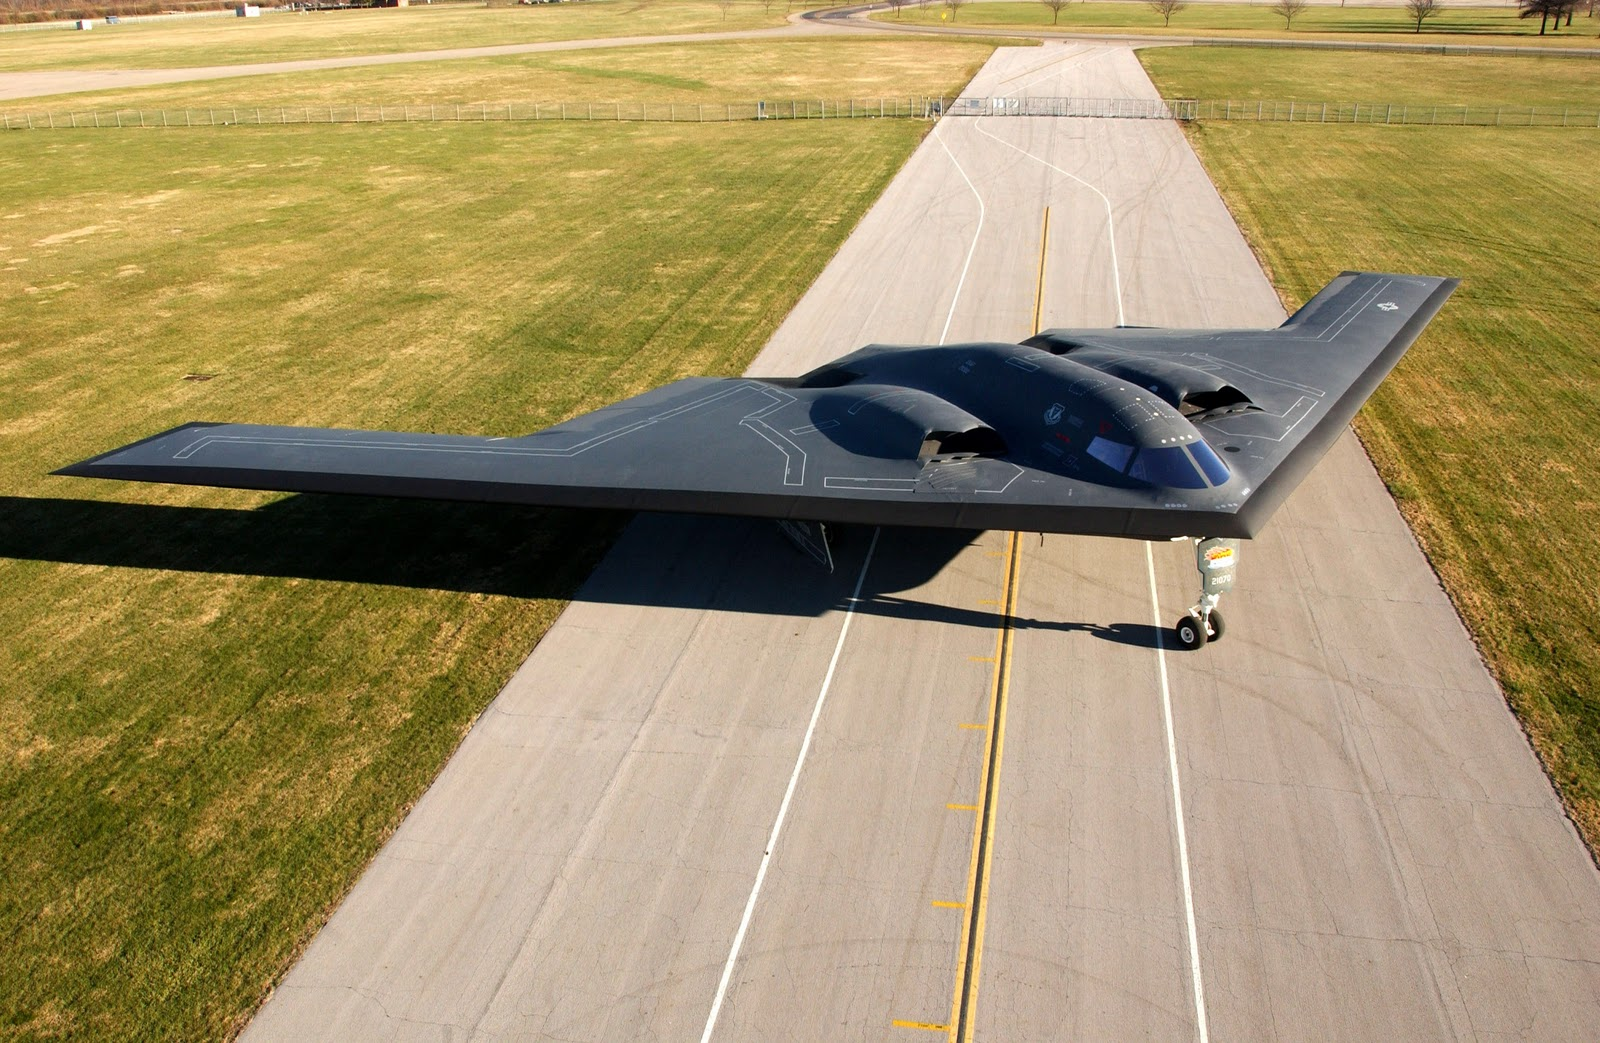 the adjacent of the stealth technology in military aircrafts in the us